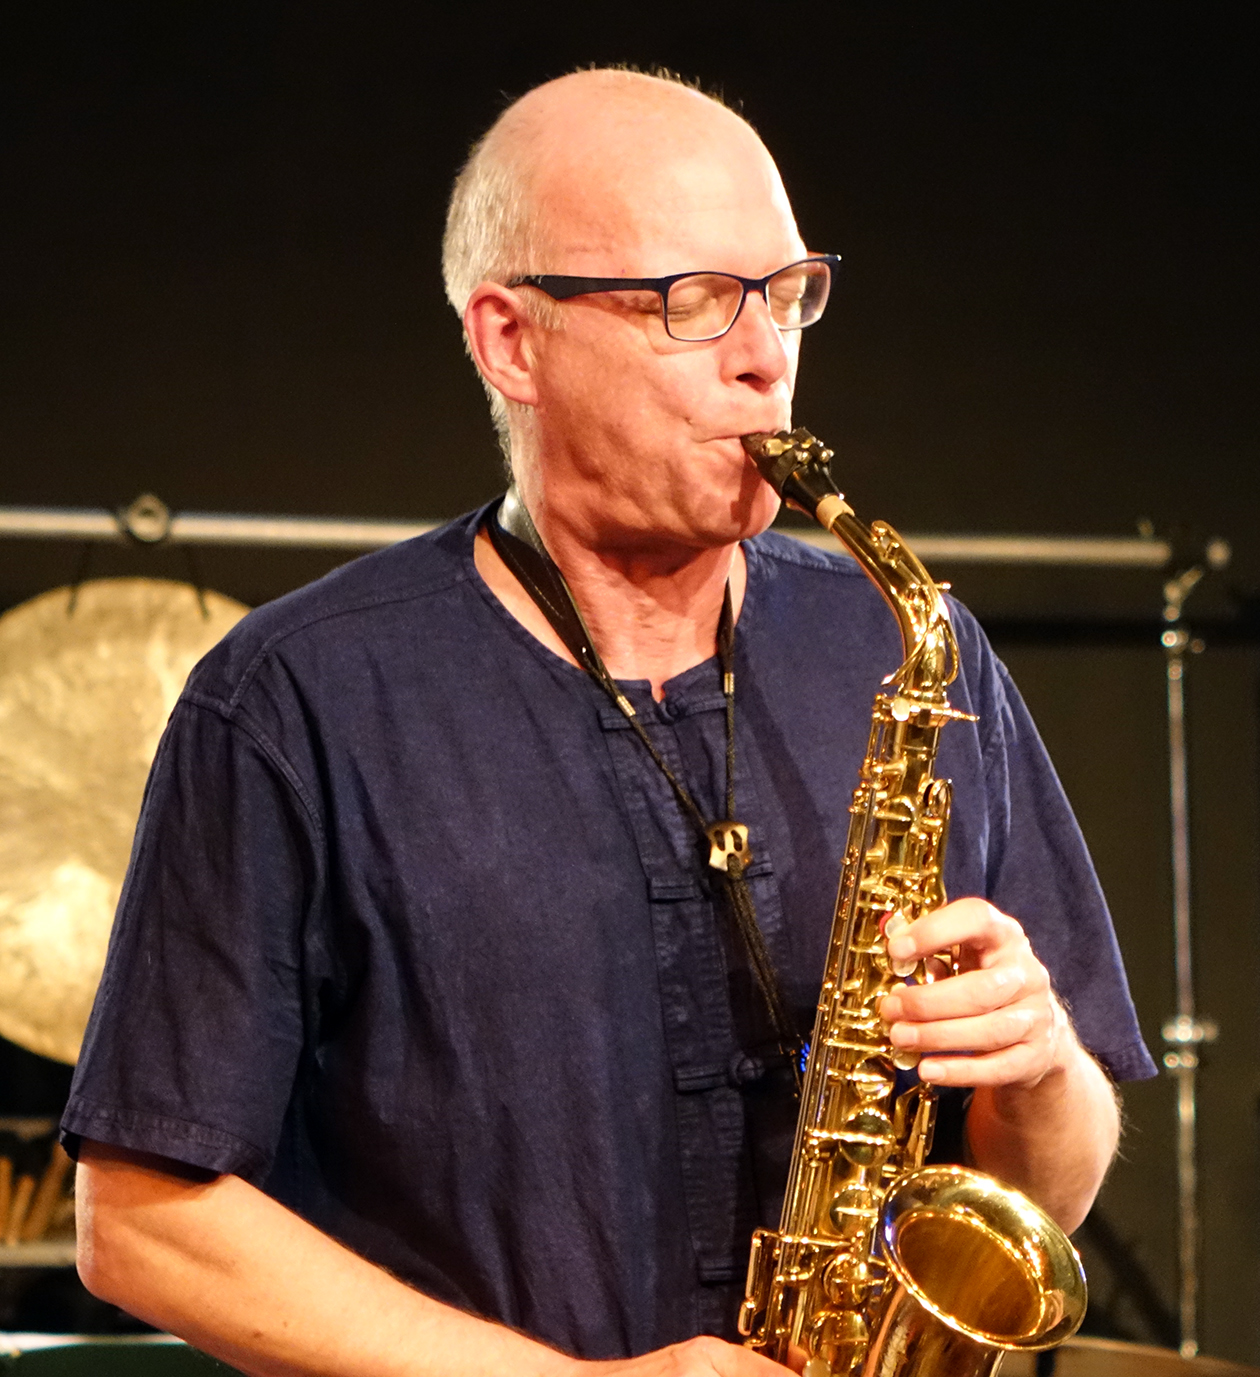 Michael Moore at Doek Festival 2015